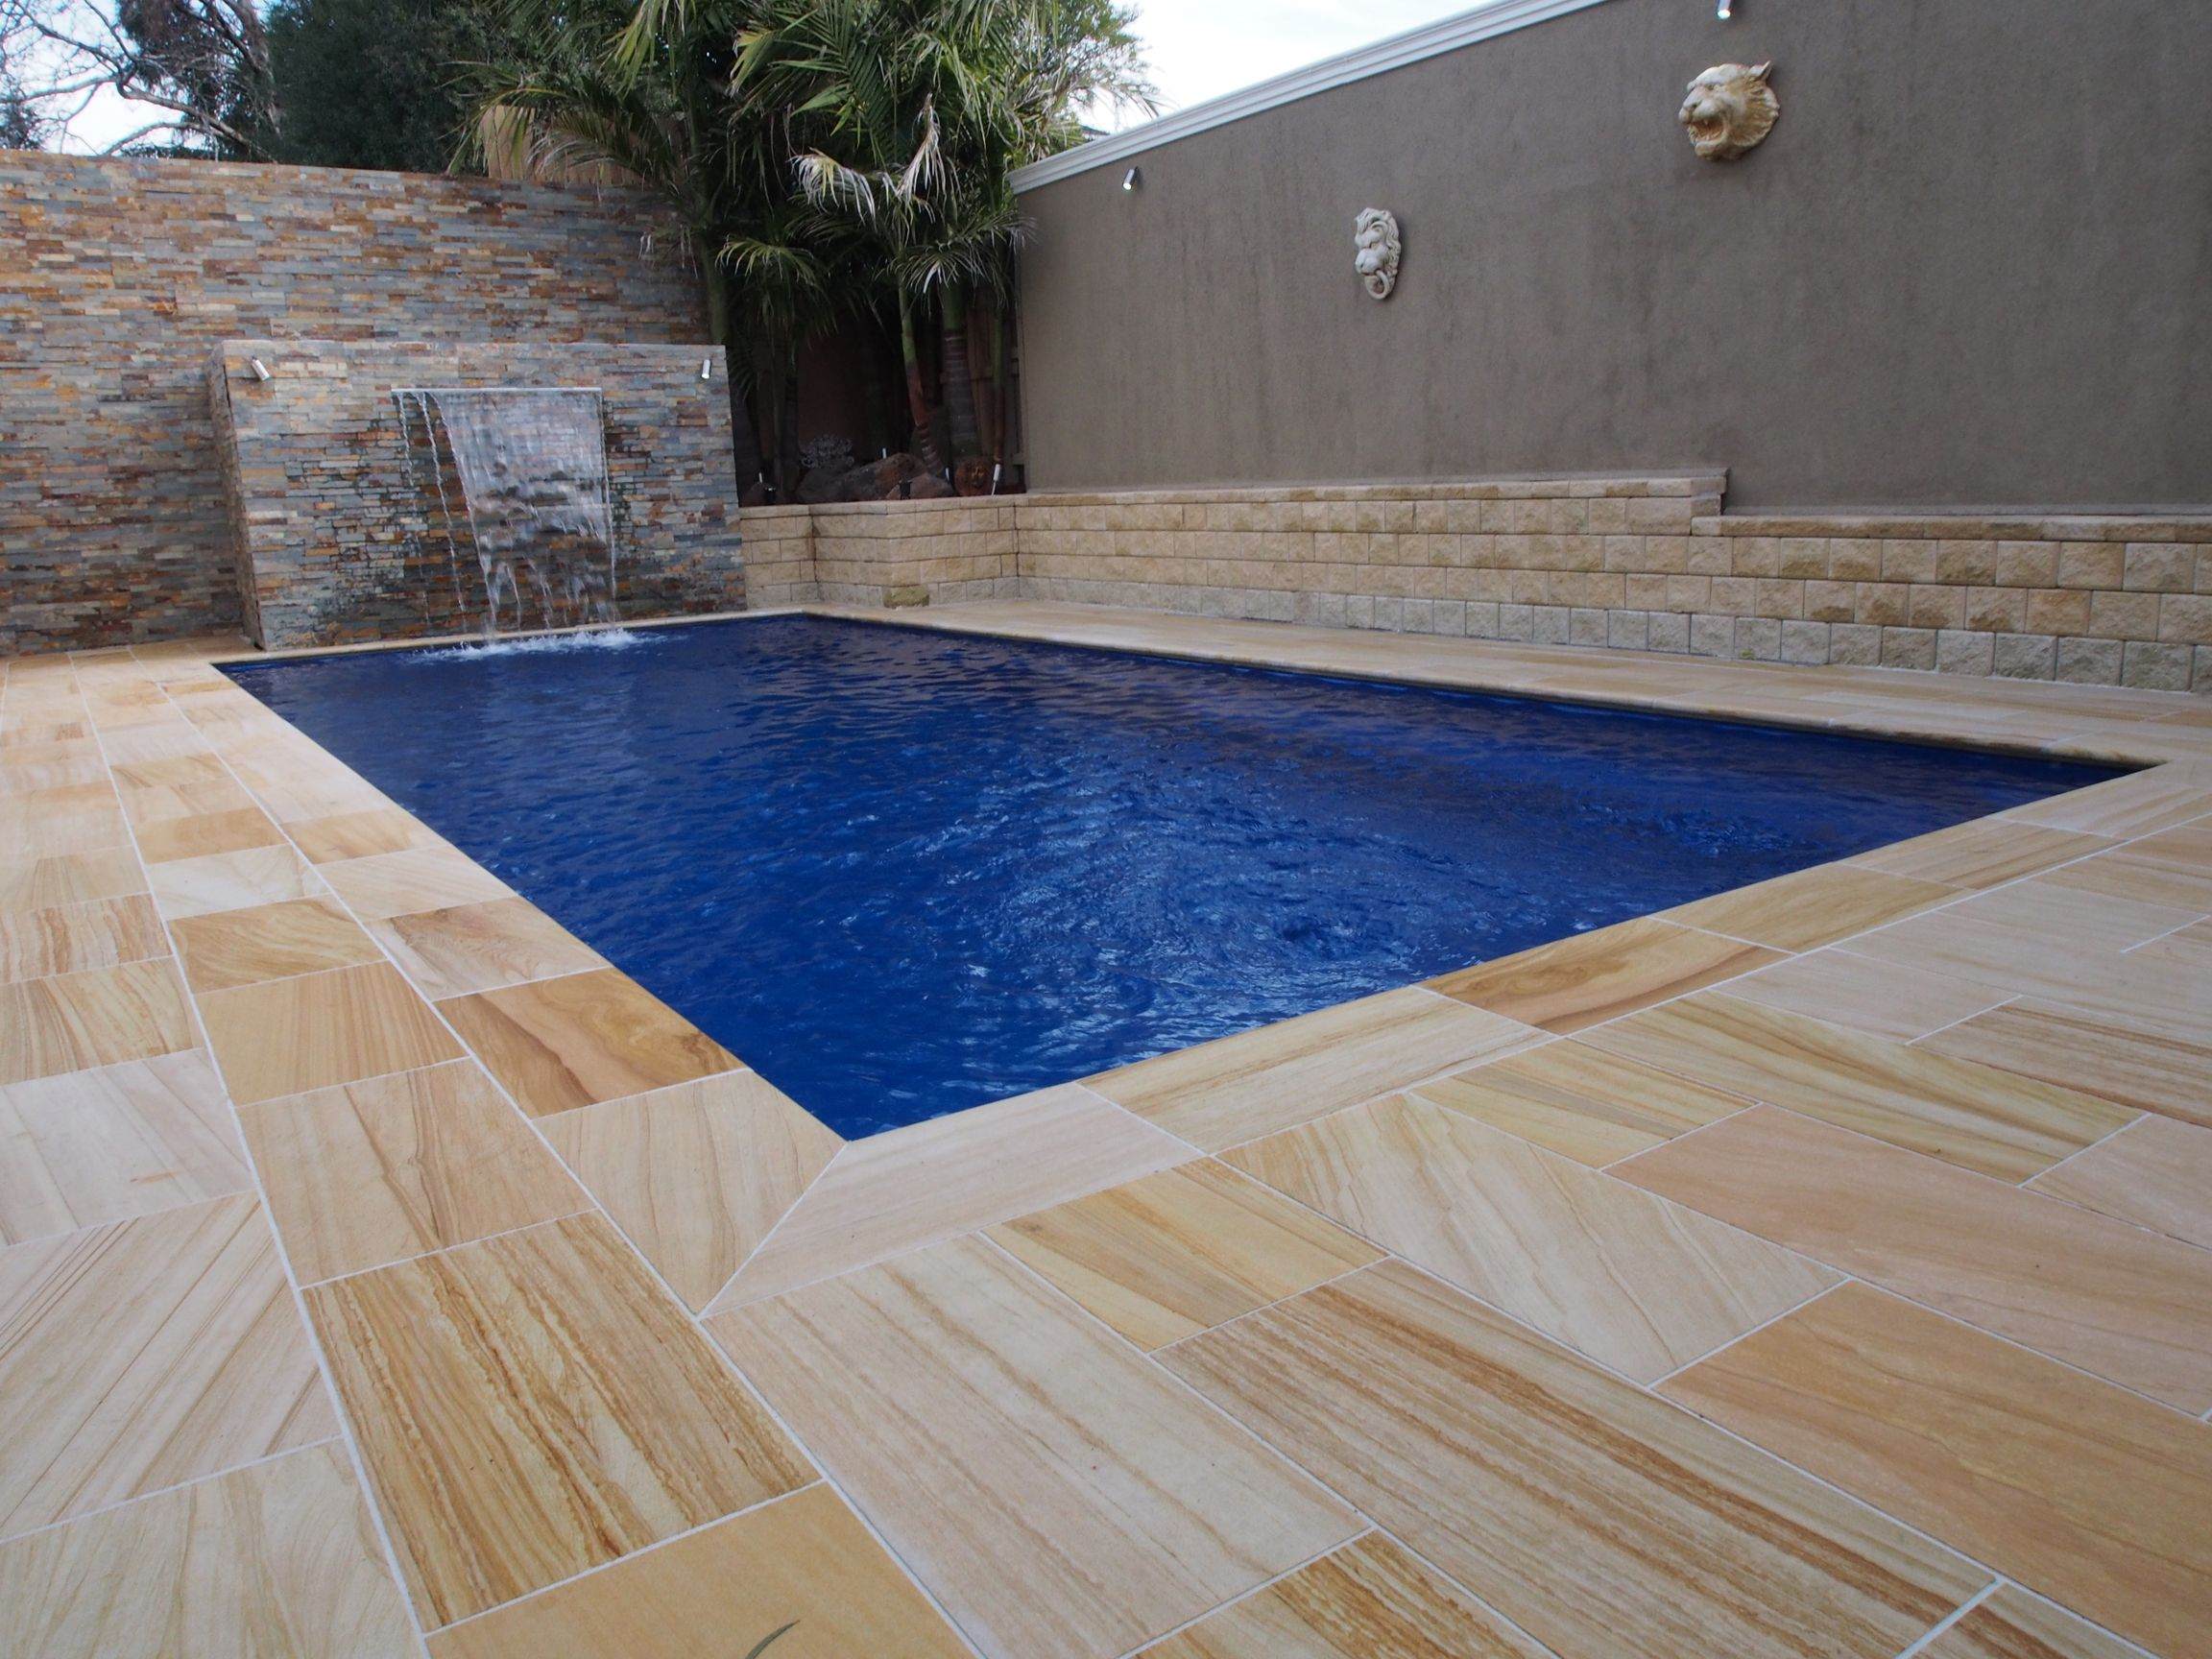 Sandstone Pool From Another Angle Sandstone Pavers Tiles Pinterest Sandstone Pavers